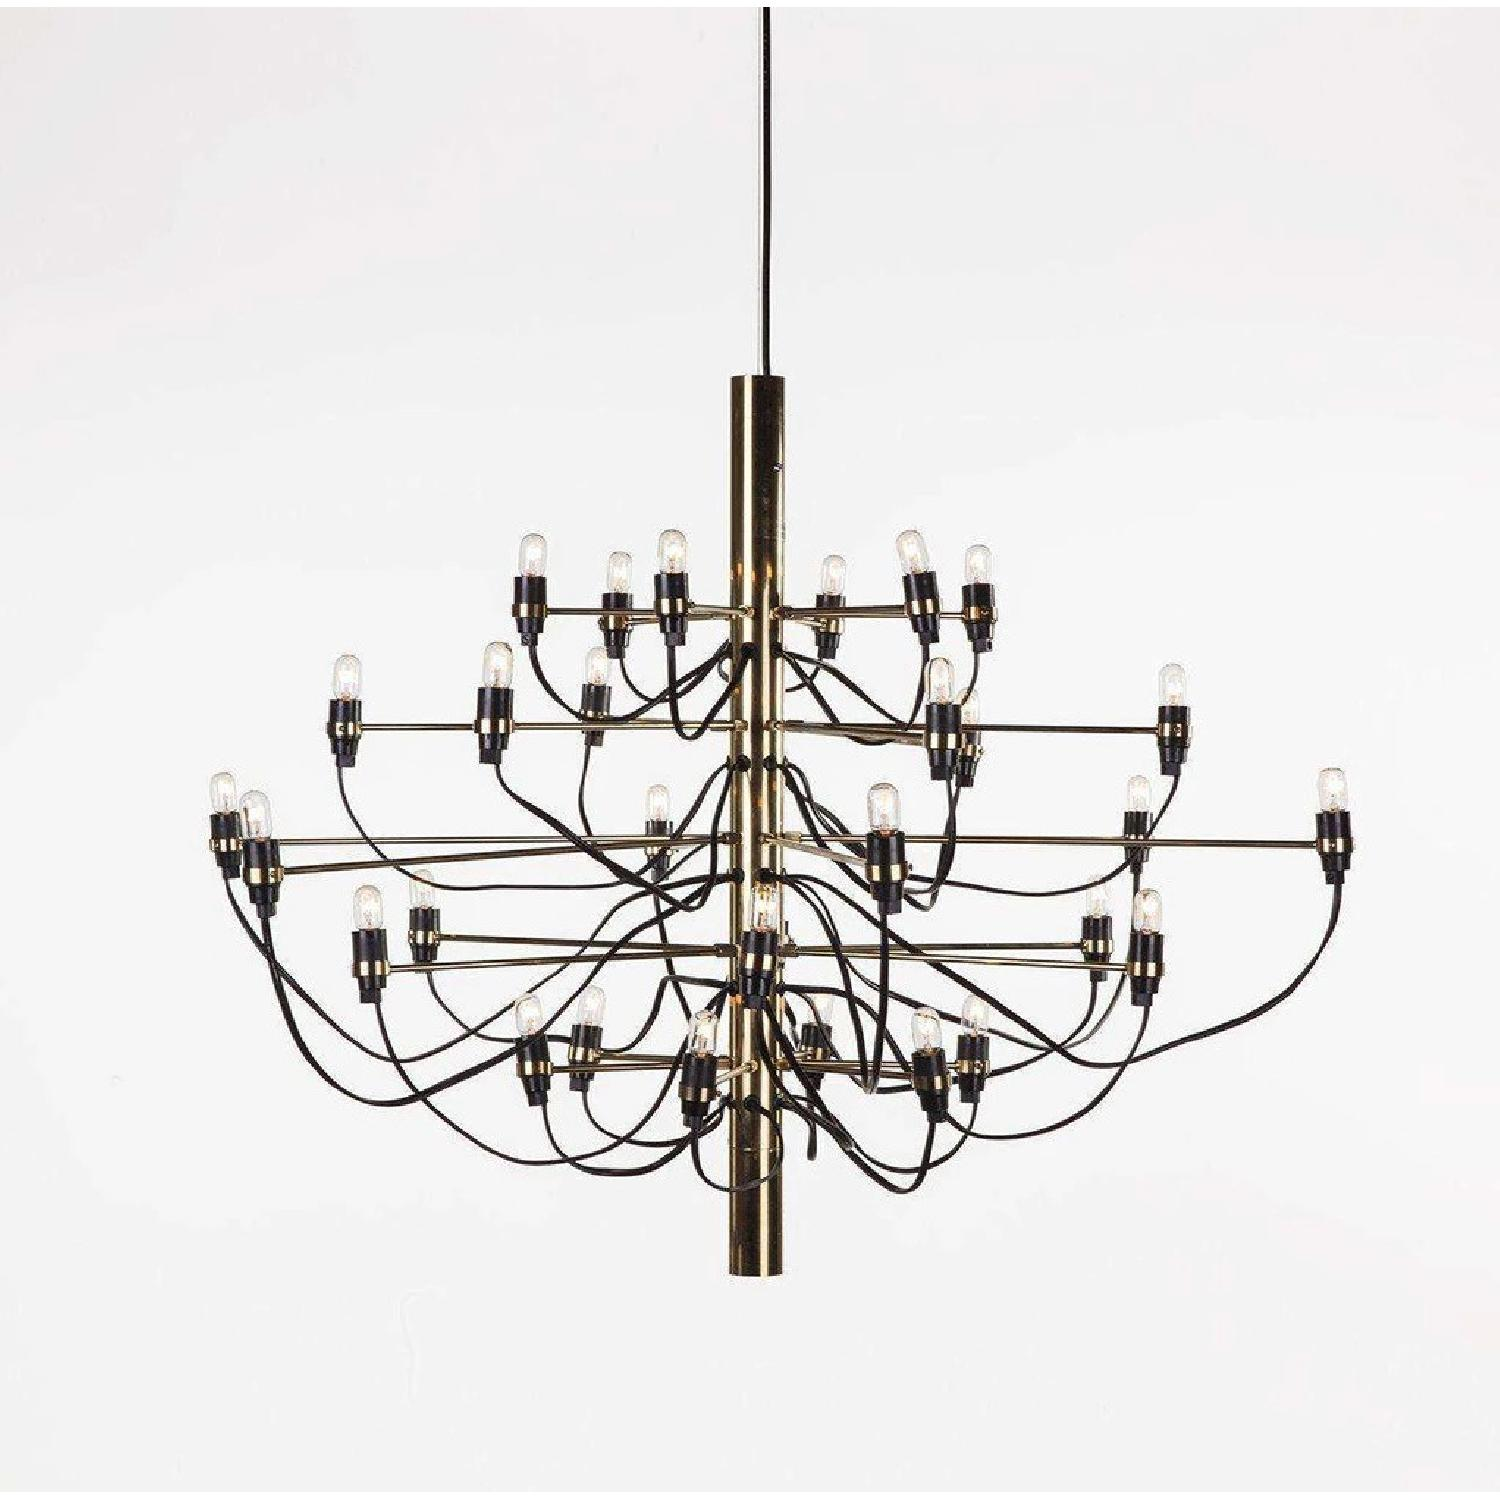 France & Son Mid Century Chandelier - image-4